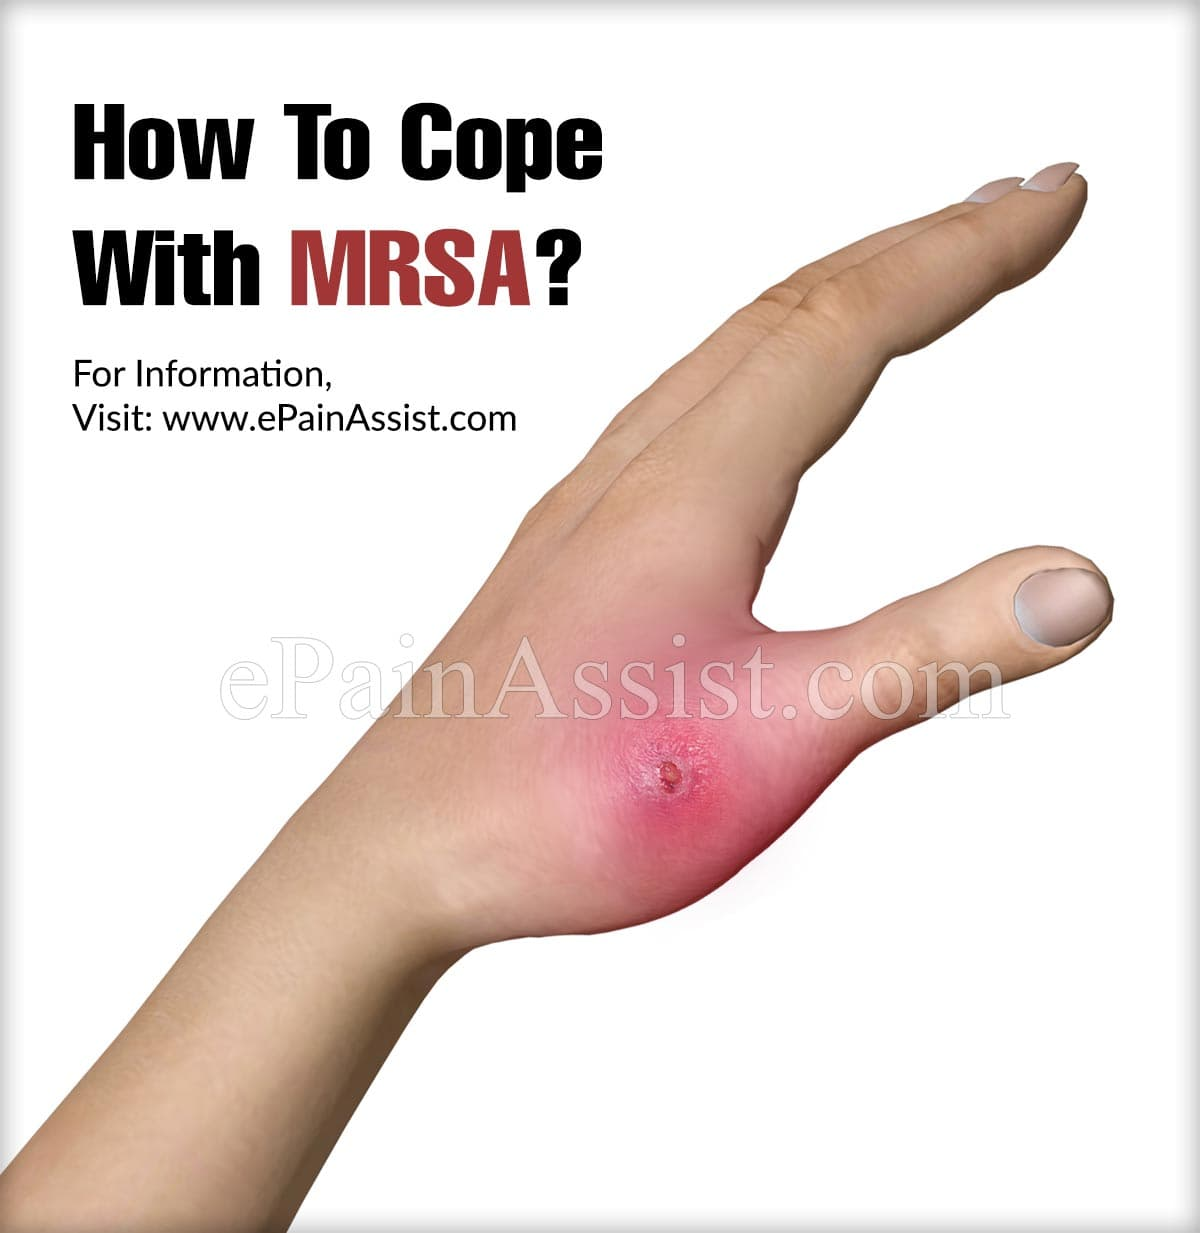 How To Cope With MRSA?